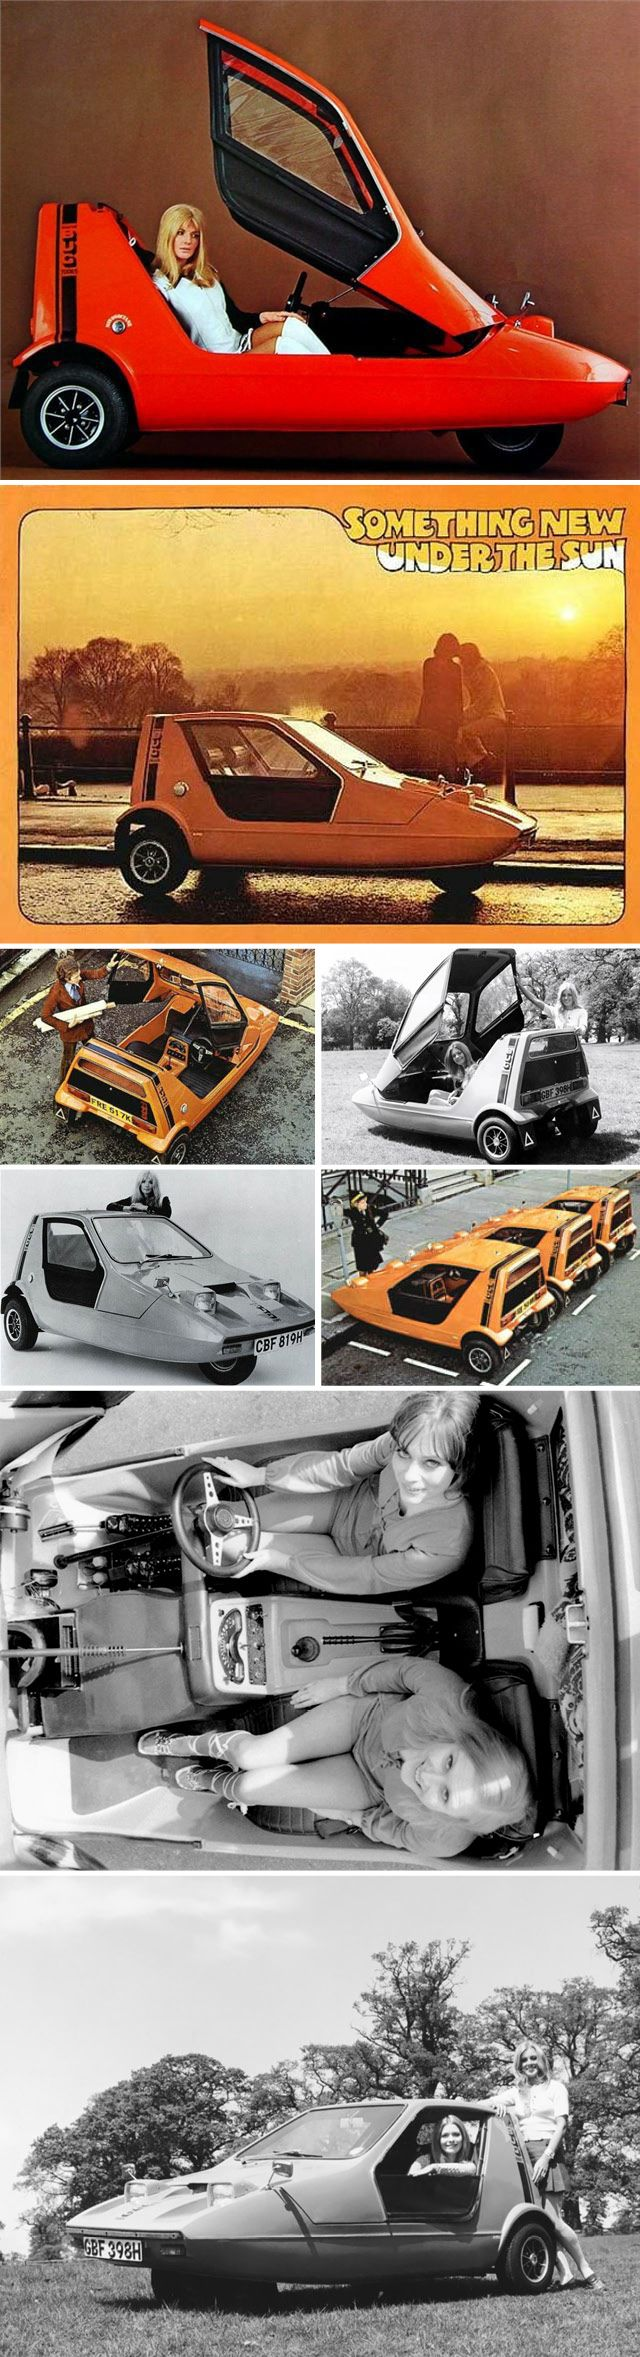 The Bond Bug is a small British two-seat, three-wheeled automobile which was built from 1970 to 1974, initially by Bond Cars Ltd and subsequently by the Reliant Motor Company. It is a wedge-shaped microcar, with a lift-up canopy and side screens instead of conventional doors.